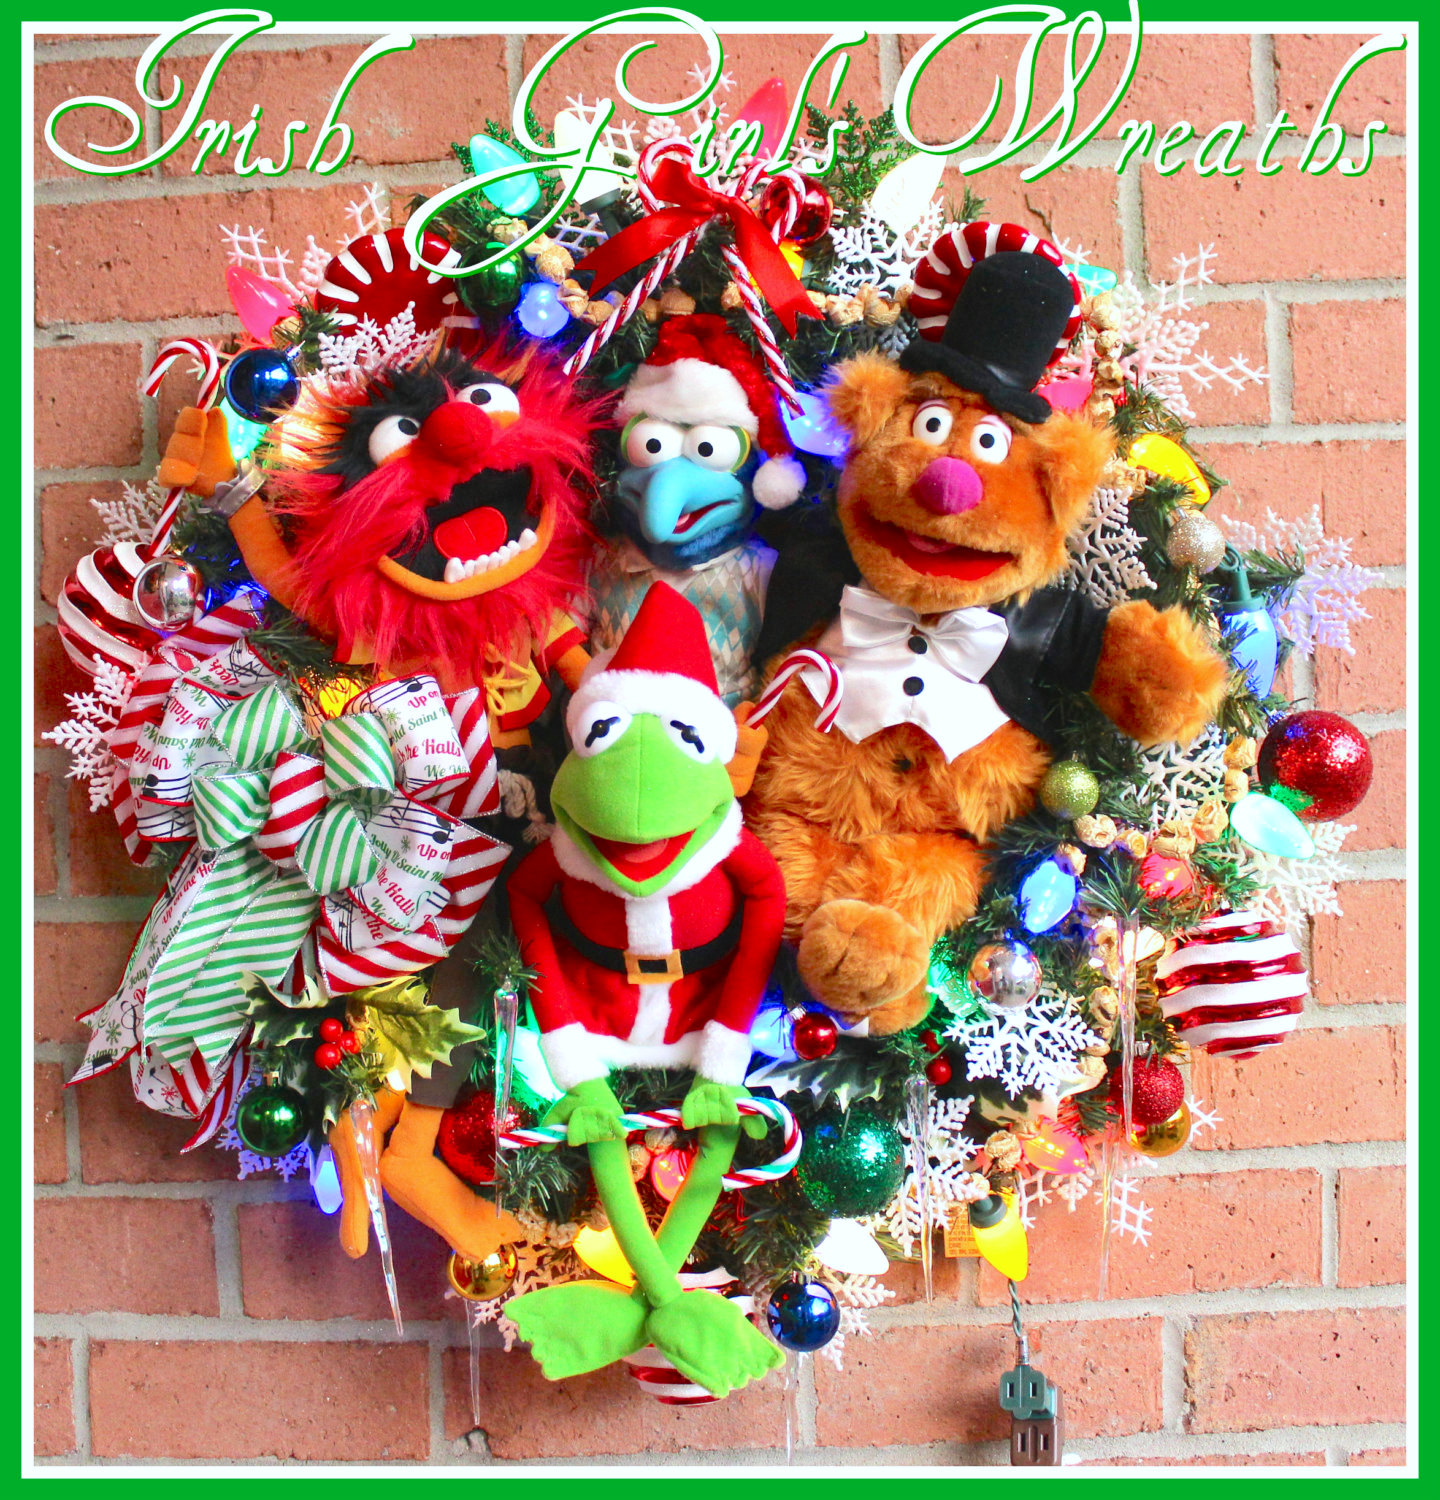 Magnificent Muppets Merry Christmas Wreath, Ceramic Color LED lights, Fozzie Bear, Kermit the Frog, Animal, Gonzo